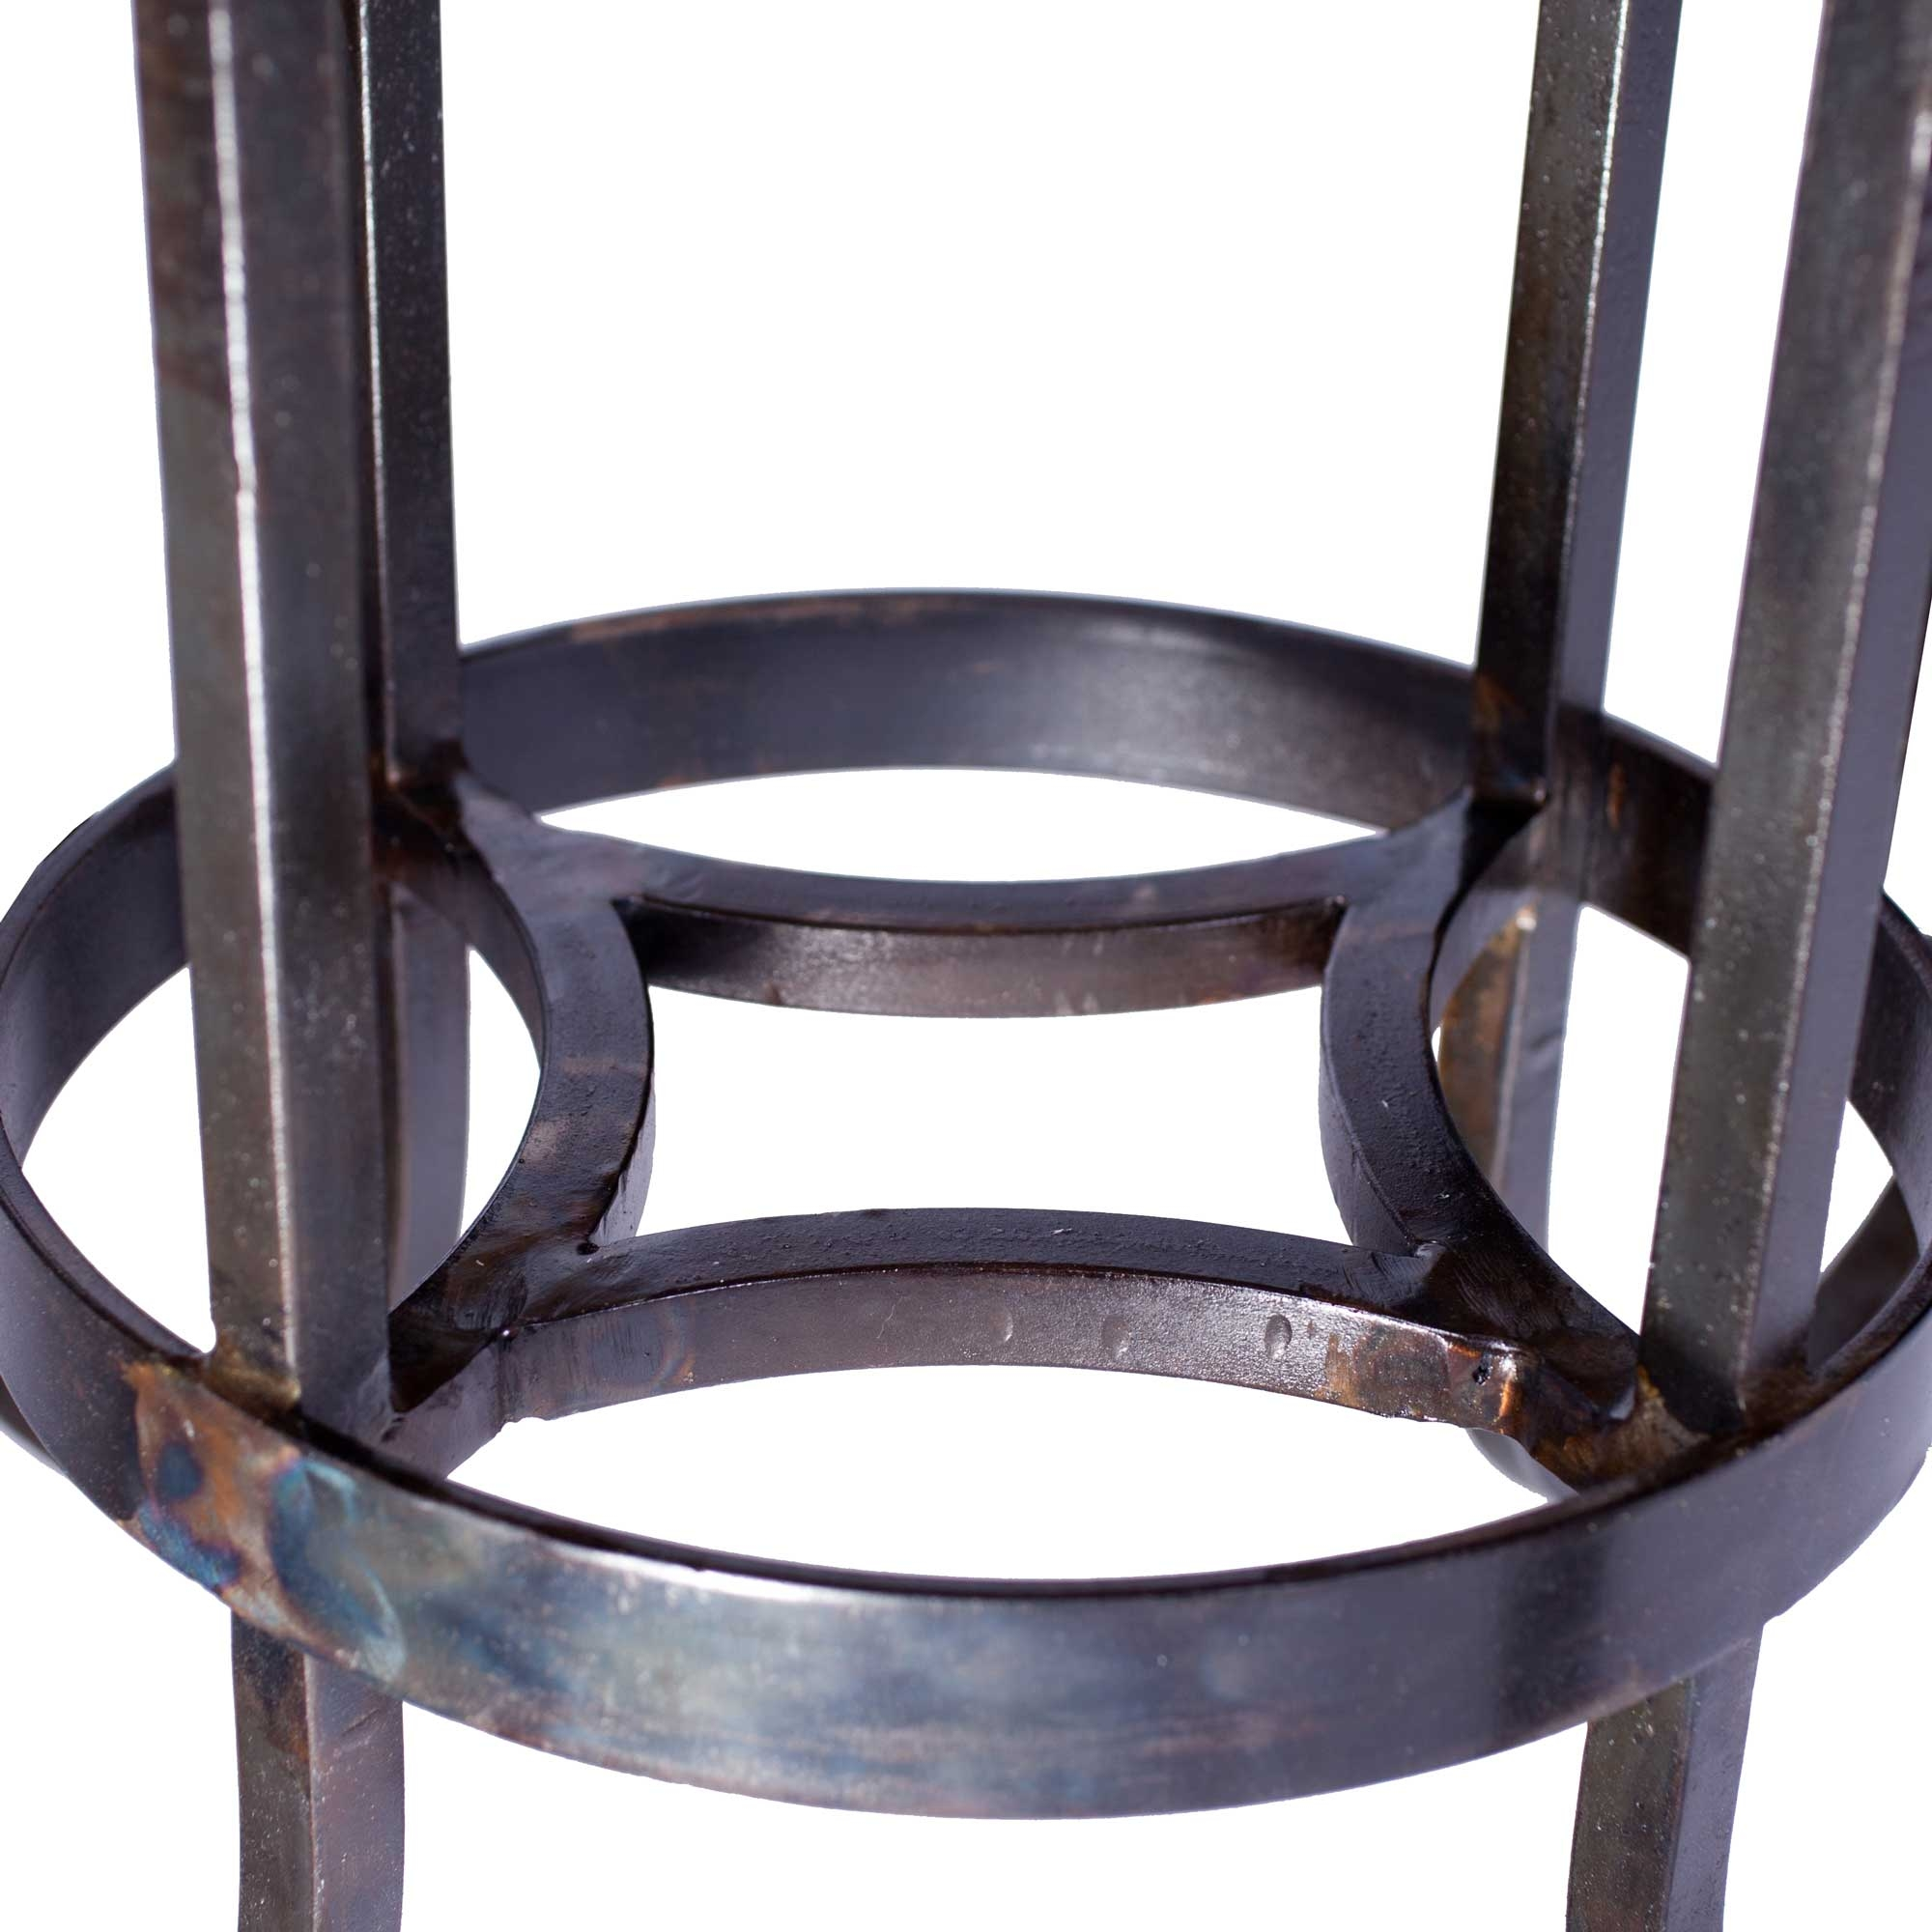 Marble Table Tops Round Curled Leg Iron Dining Table With 54 Round Marble Top